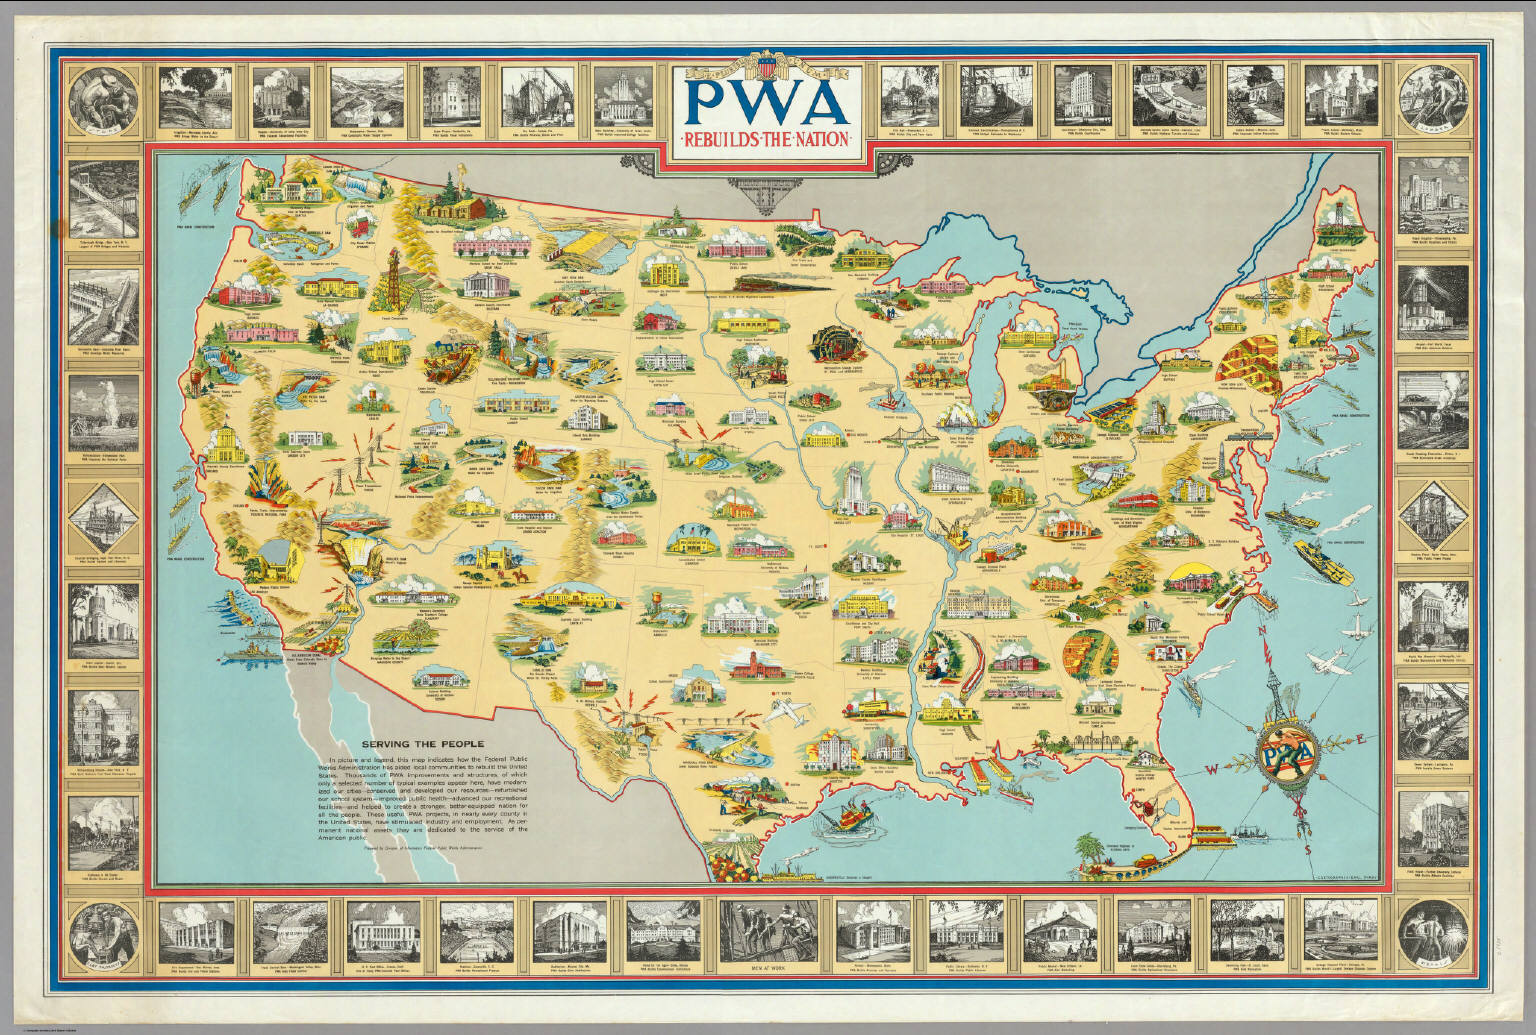 Pwa rebuilds the nation david rumsey historical map collection pwa rebuilds the nation gumiabroncs Choice Image